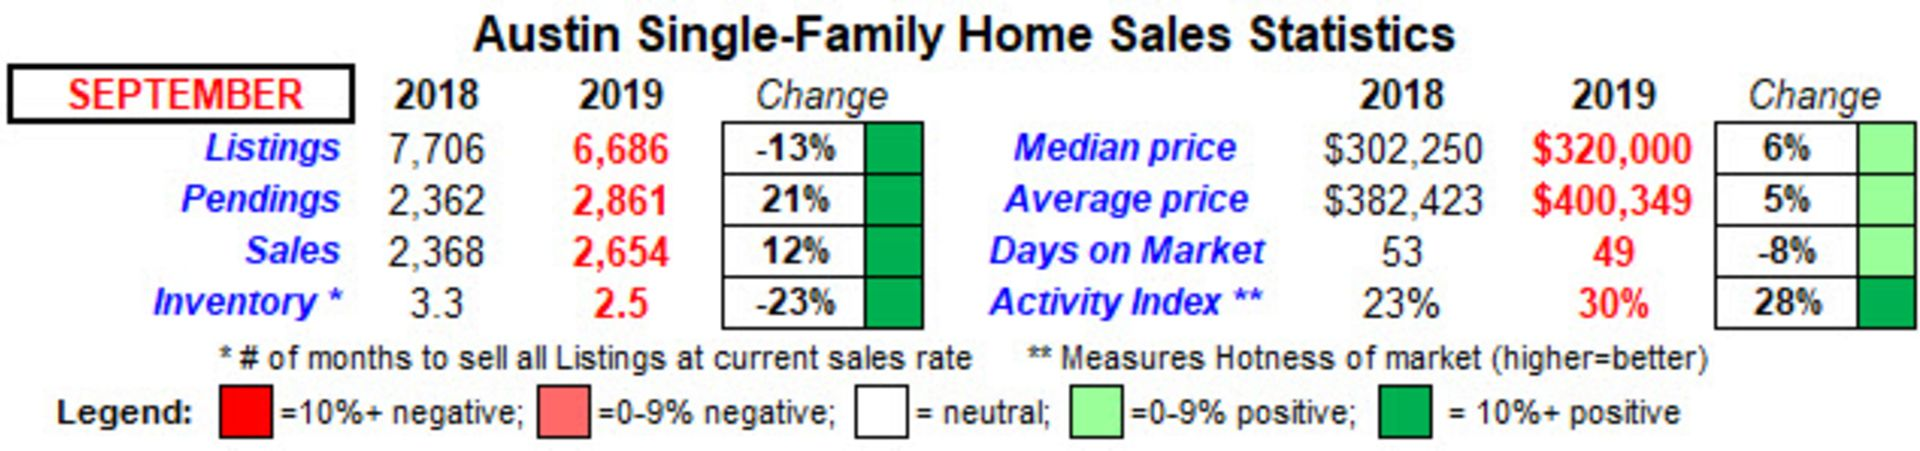 September Austin home sales is strongest month of 2019